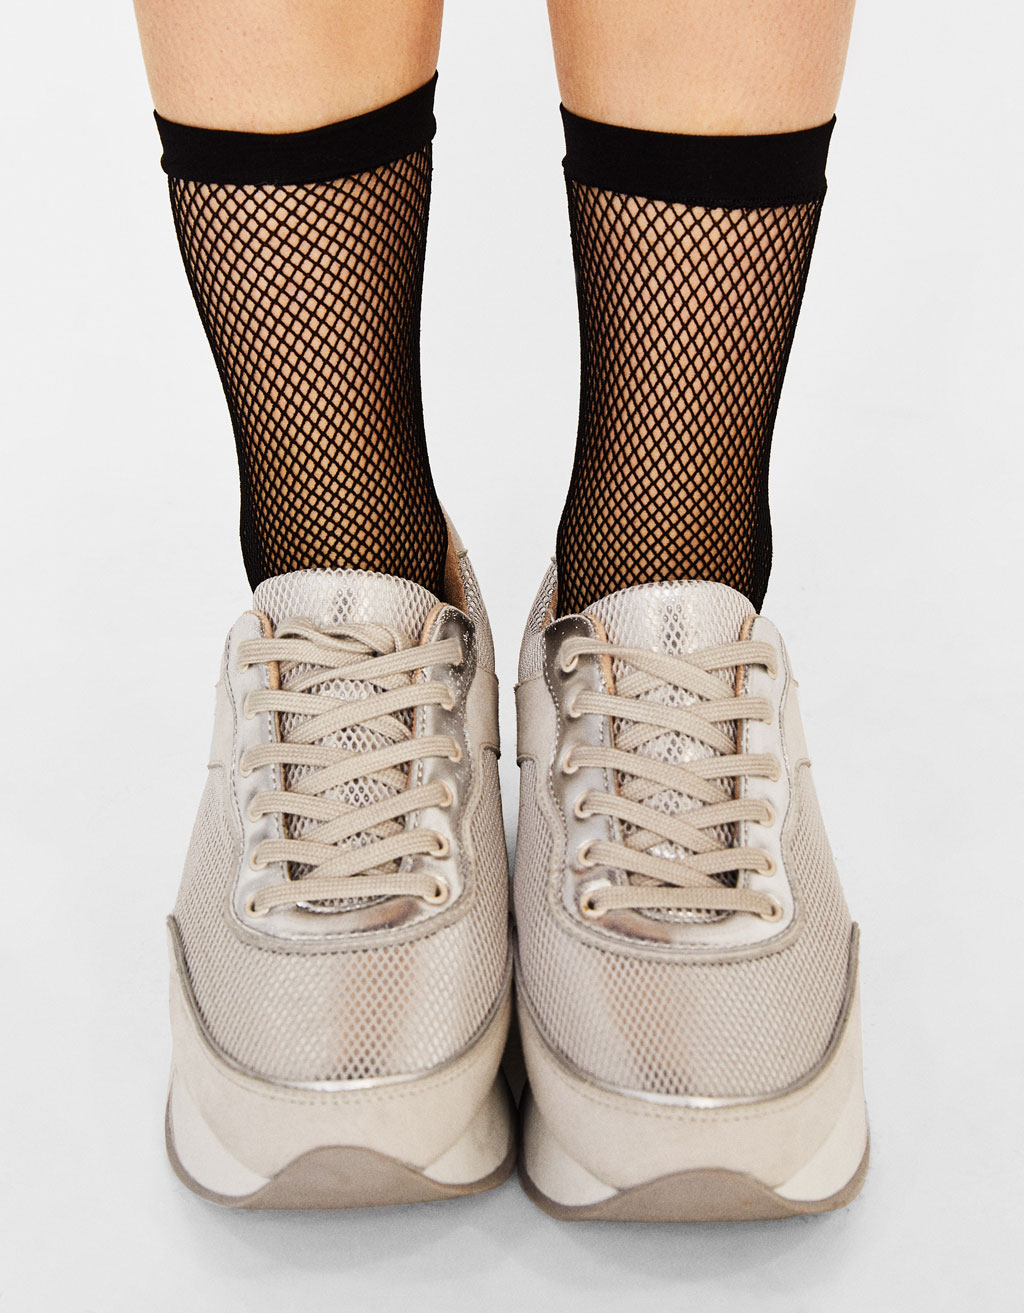 Black fishnet socks